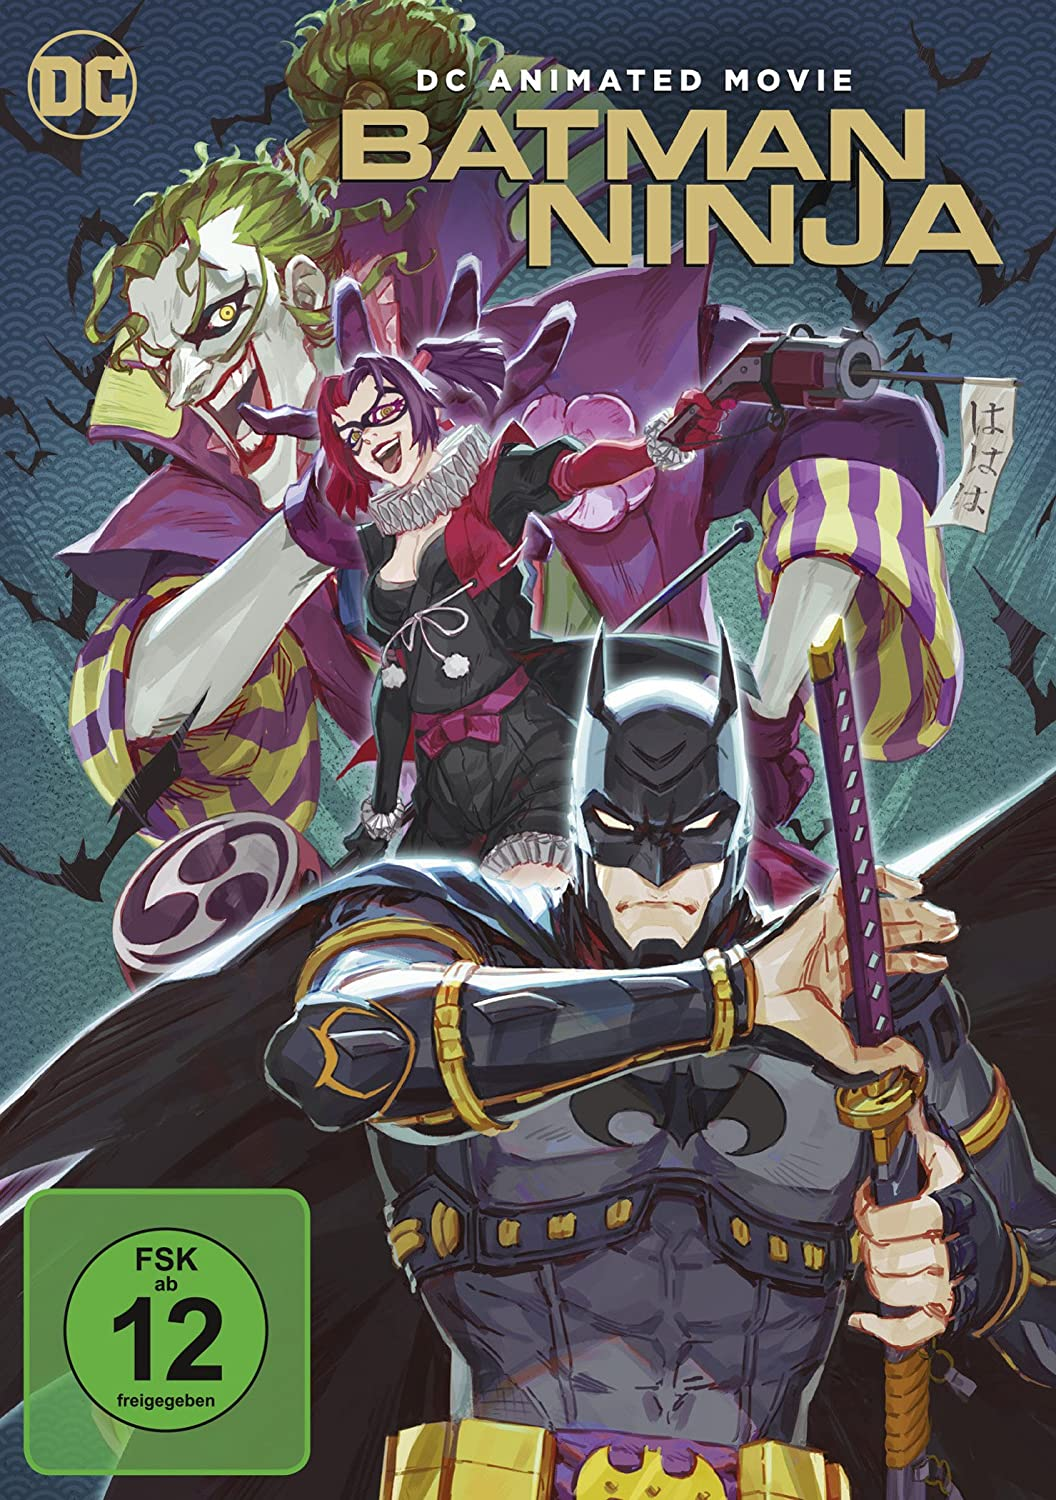 Amazon.com: Batman Ninja, 1 DVD: Movies & TV